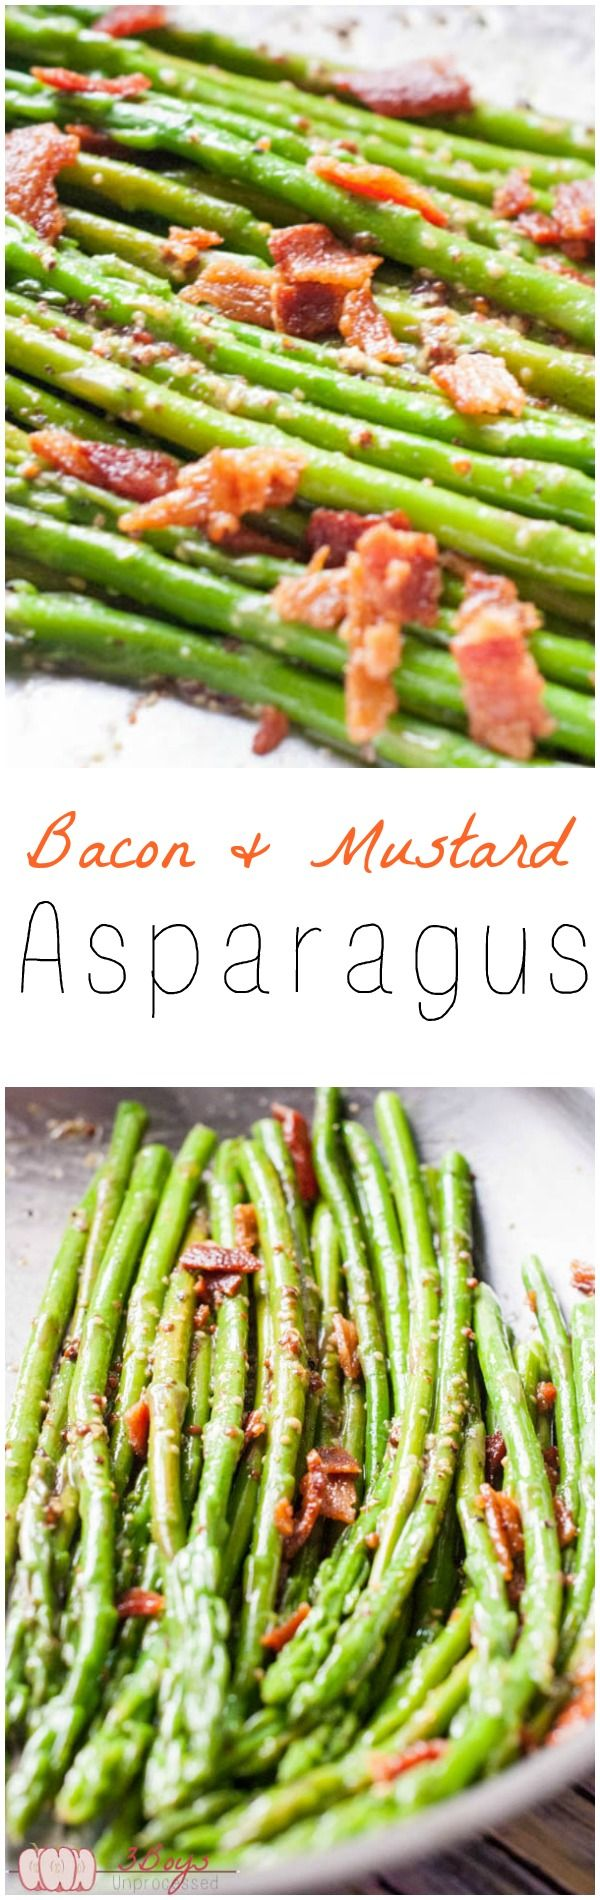 warm asparagus and toasted bacon potato and asparagus boiled green ...